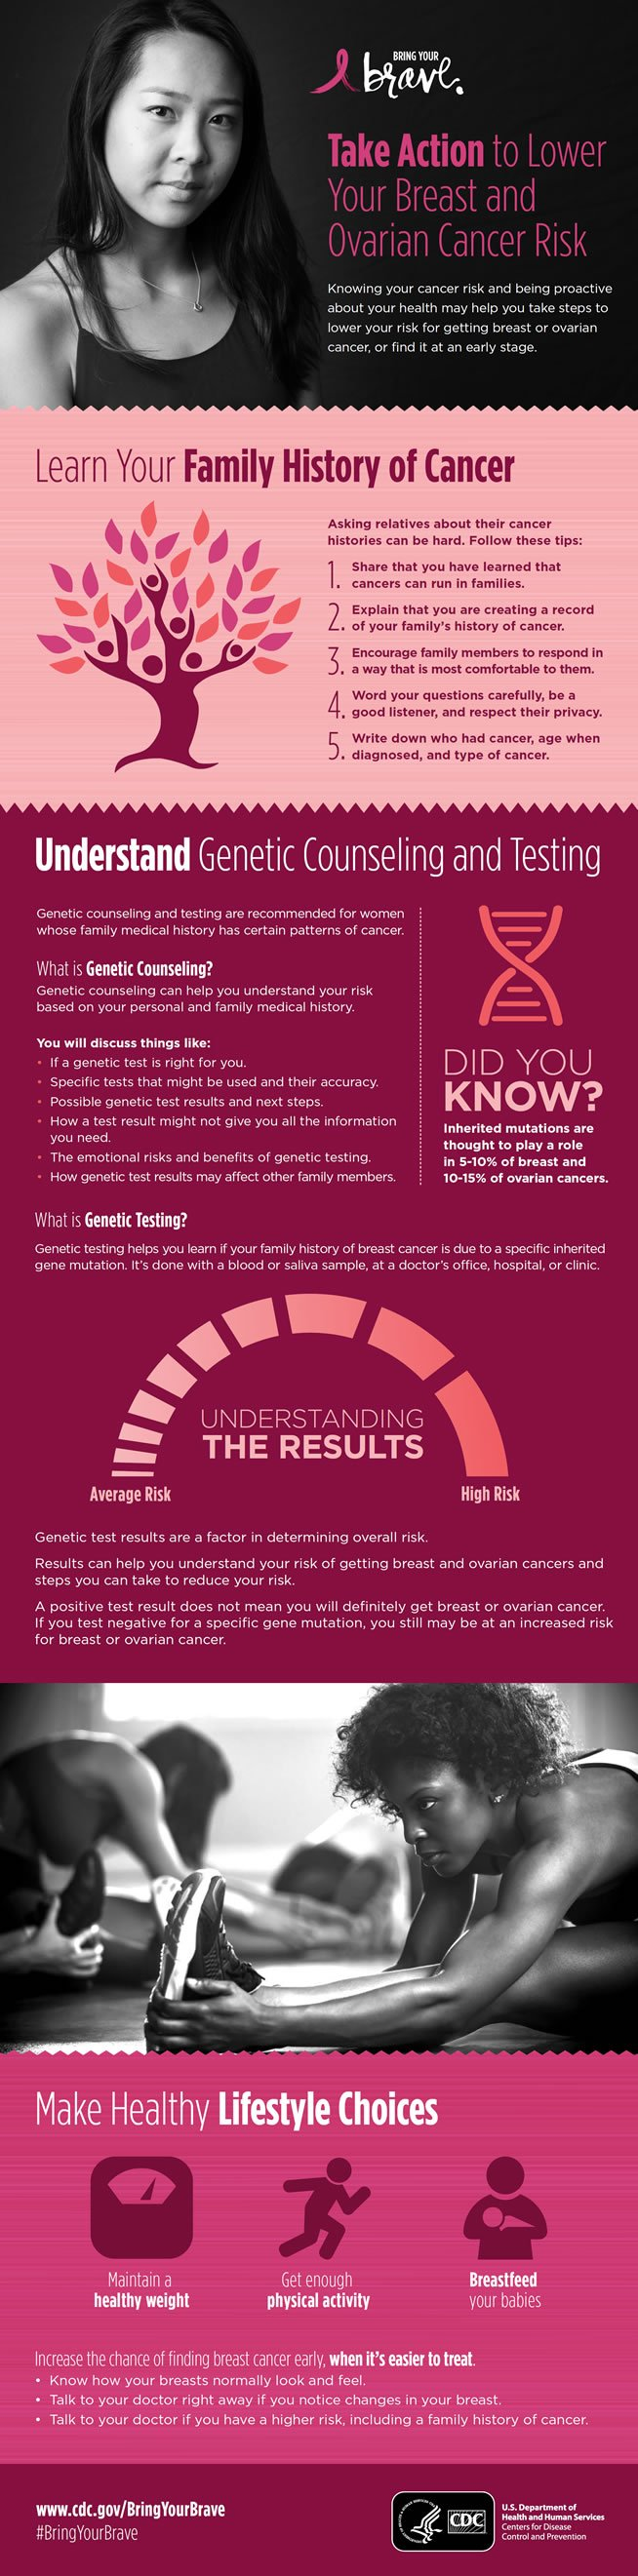 breast and ovarian cancer risk infographic